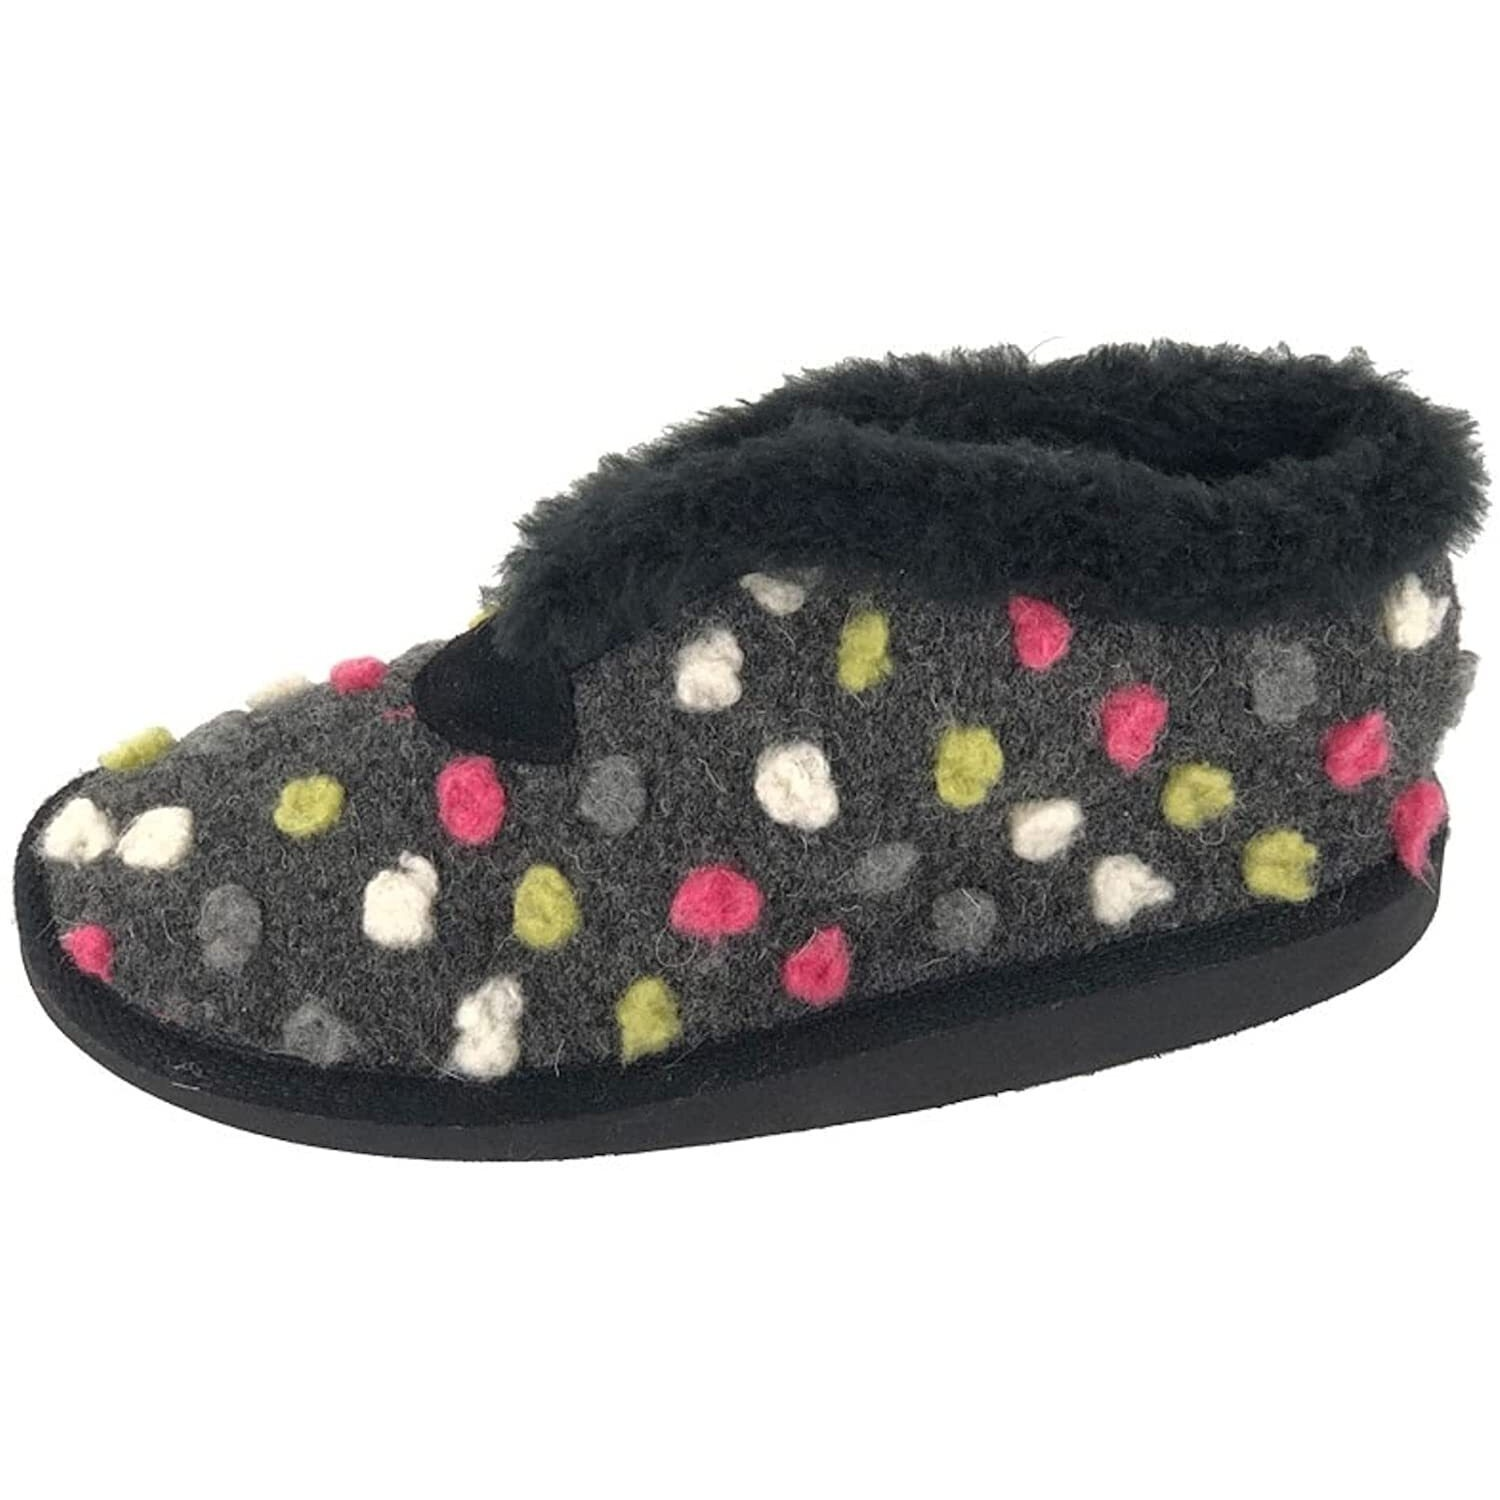 Sleepers Women//Ladies Tilly Lightweight Thermal Lined Bootee Slippers DF544